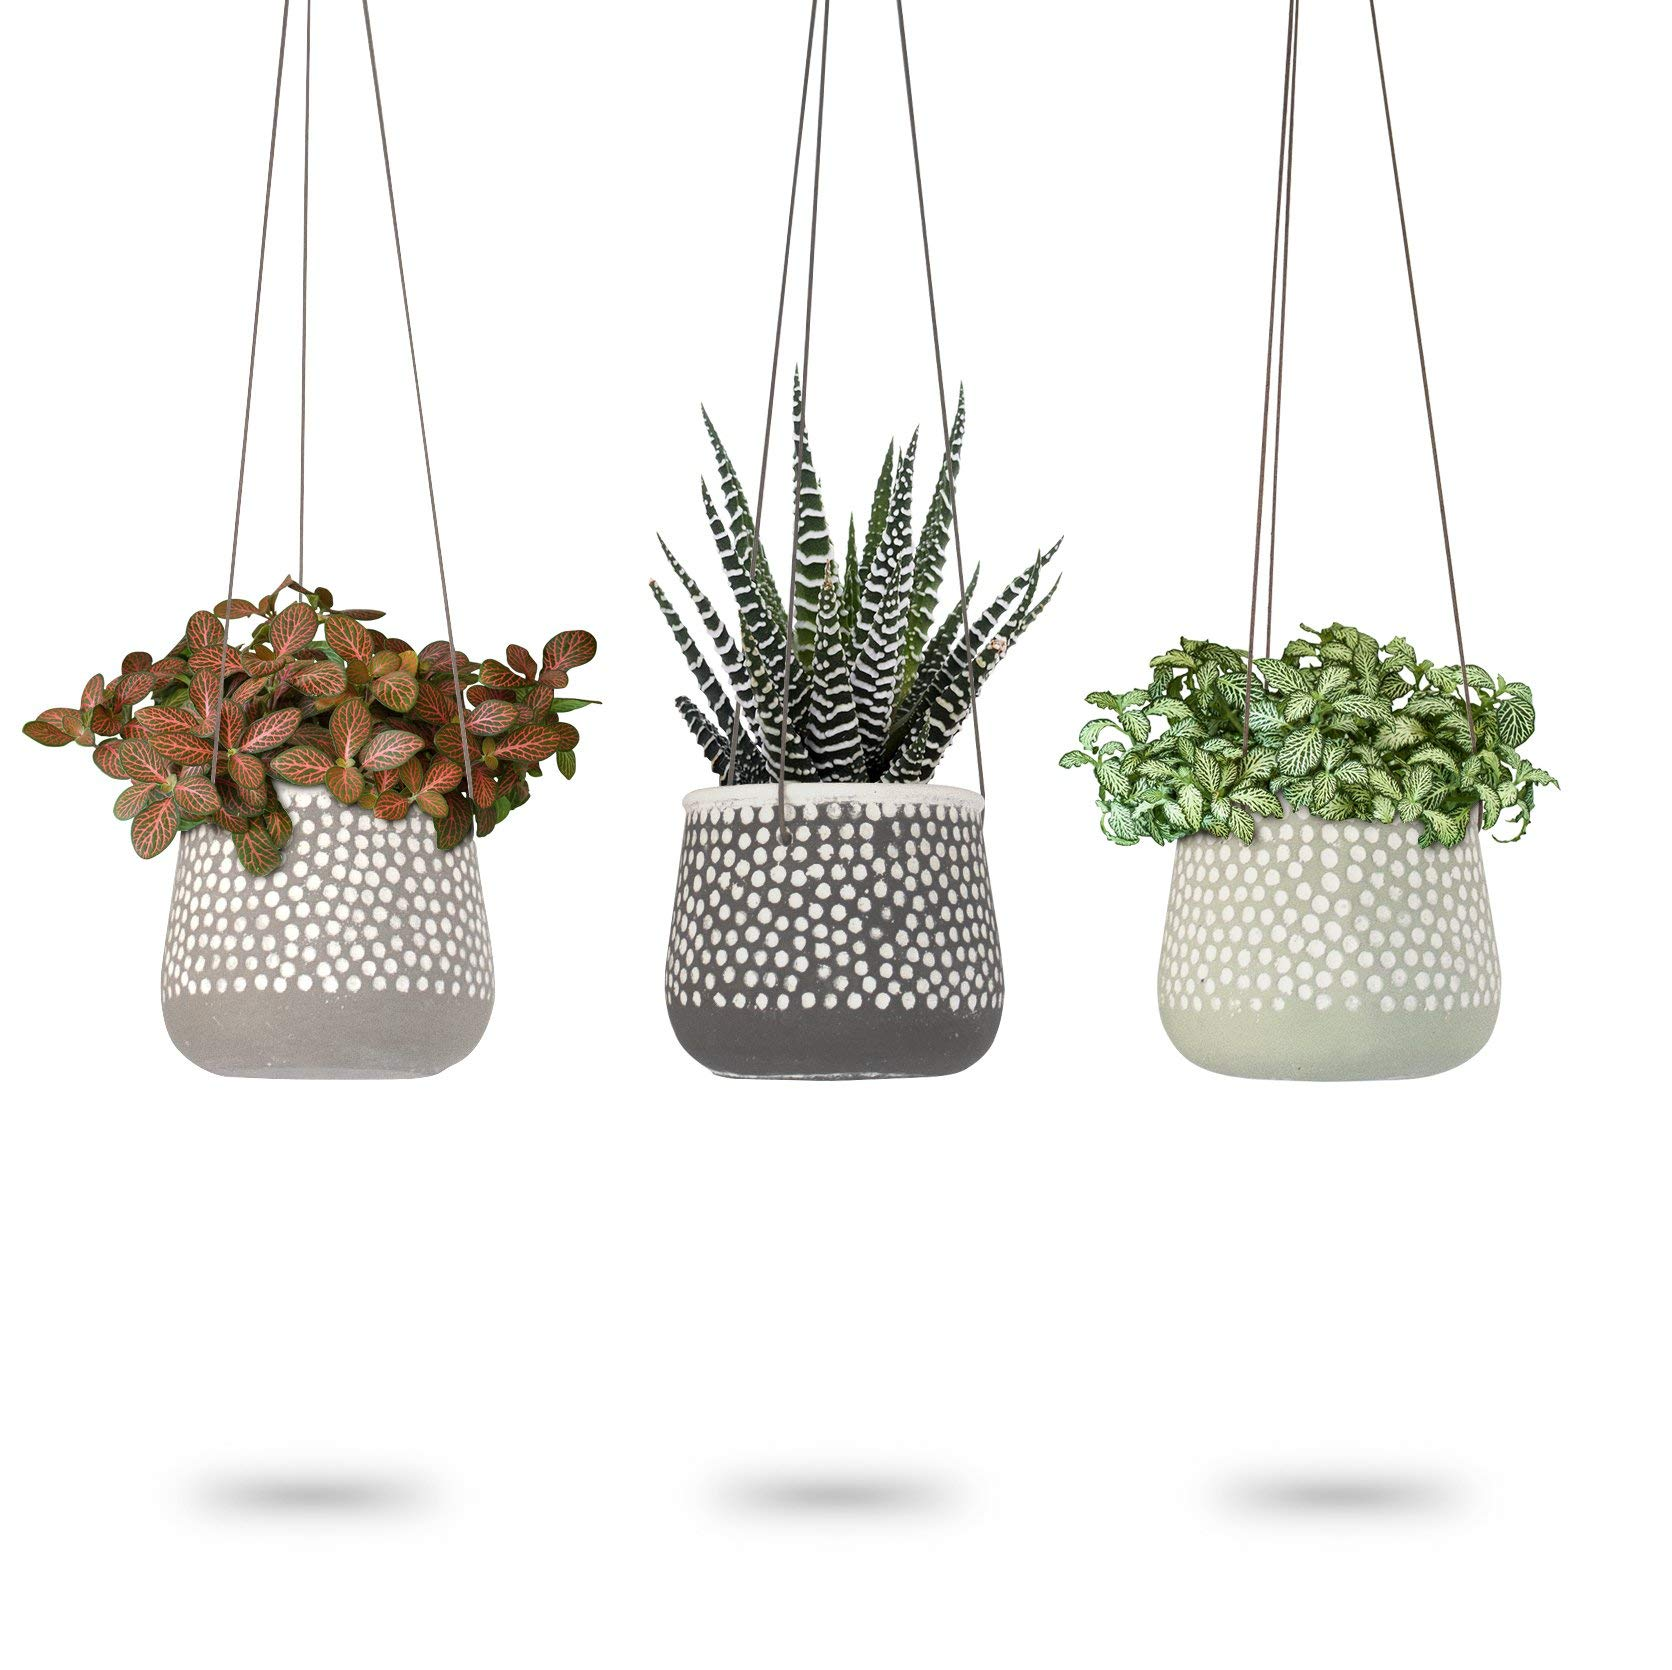 Concrete Hanging Planter   Polka Dot Design Succulent Pots   Round Plant Holder Container   Cactus Pot with Brown Cord Hanger   Indoor Outdoor Decor   23 Bees (3 Pack x Shades of Nature)